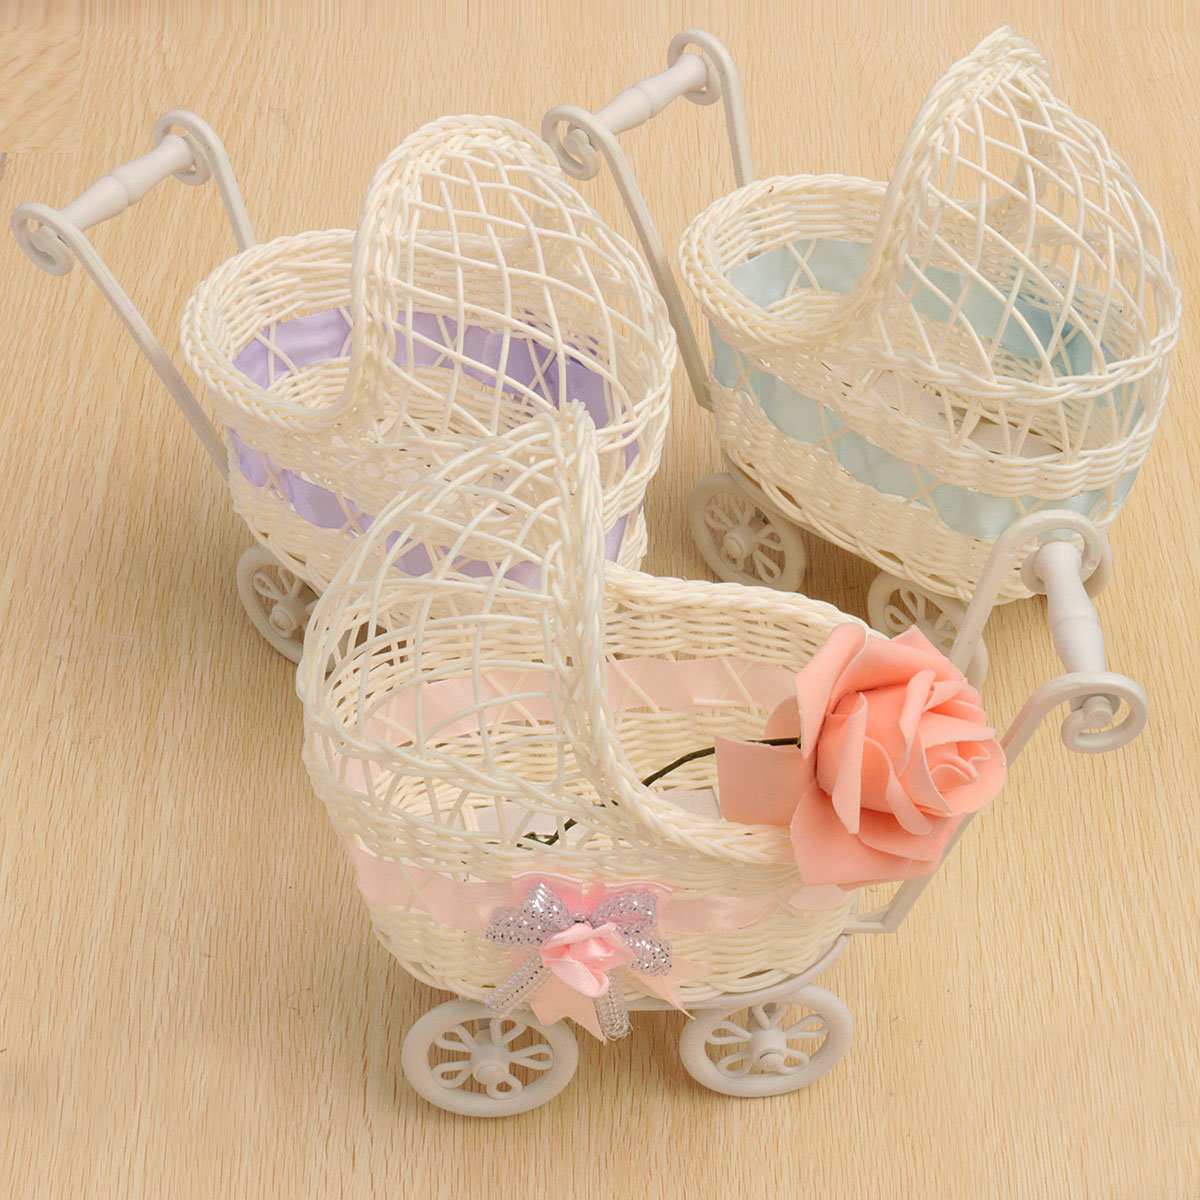 Trolley Cradle Weaving Rattan Basket Storage Bedroom Living Room Home Decor, Pink purple blue